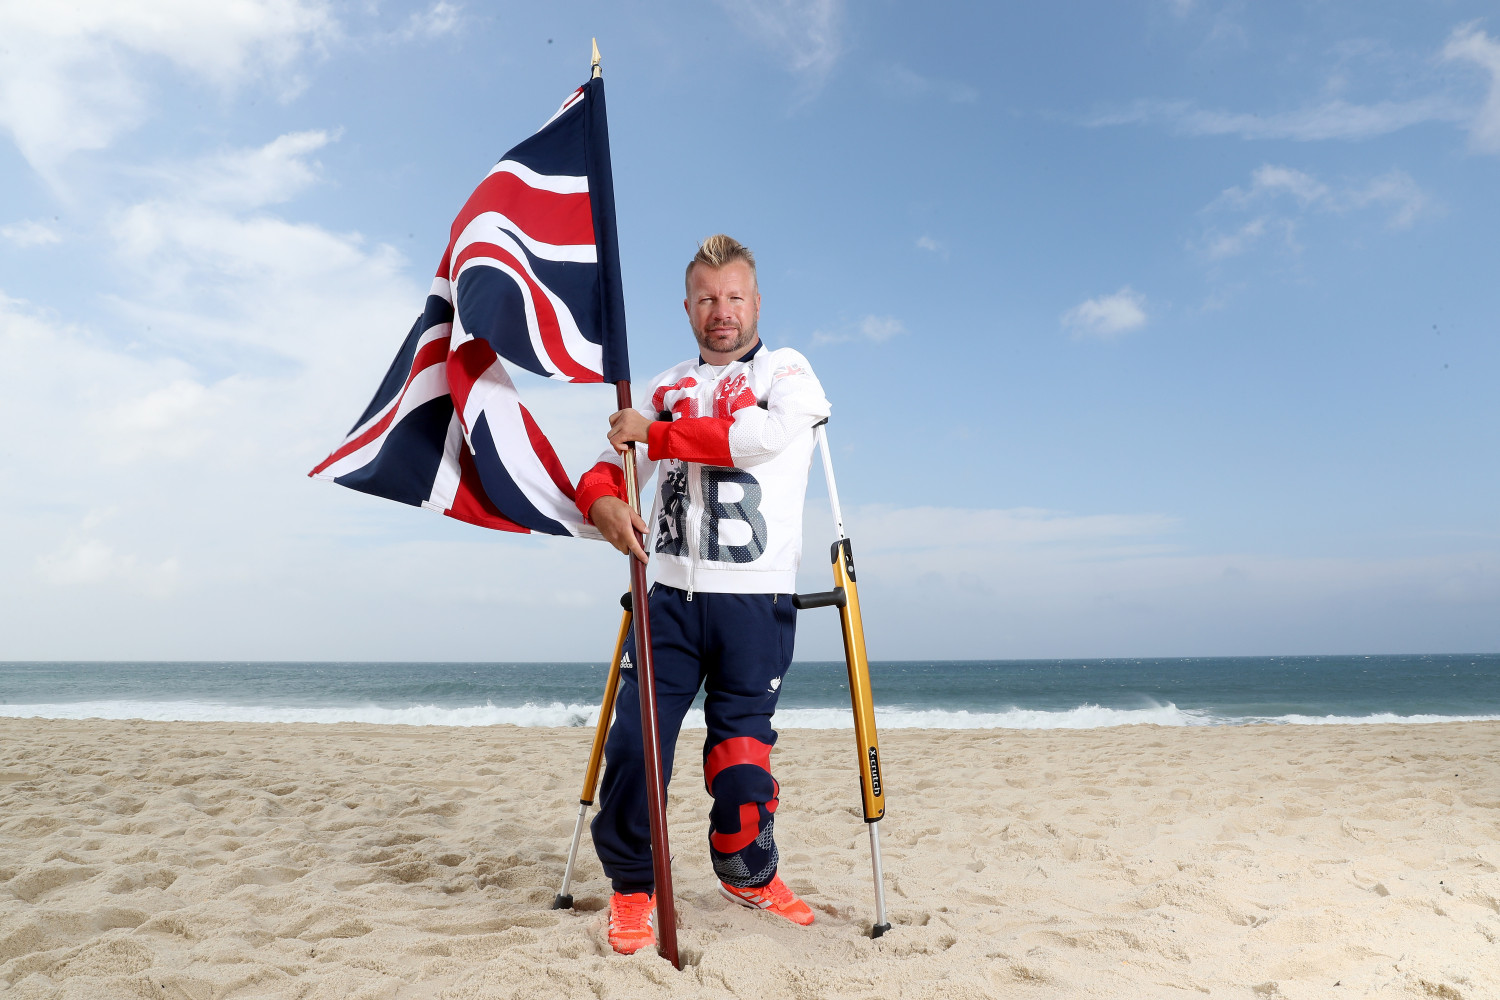 Equestrian rider Lee Pearson with the Union Jack (Photo by (Matthew Stockman/Getty Images